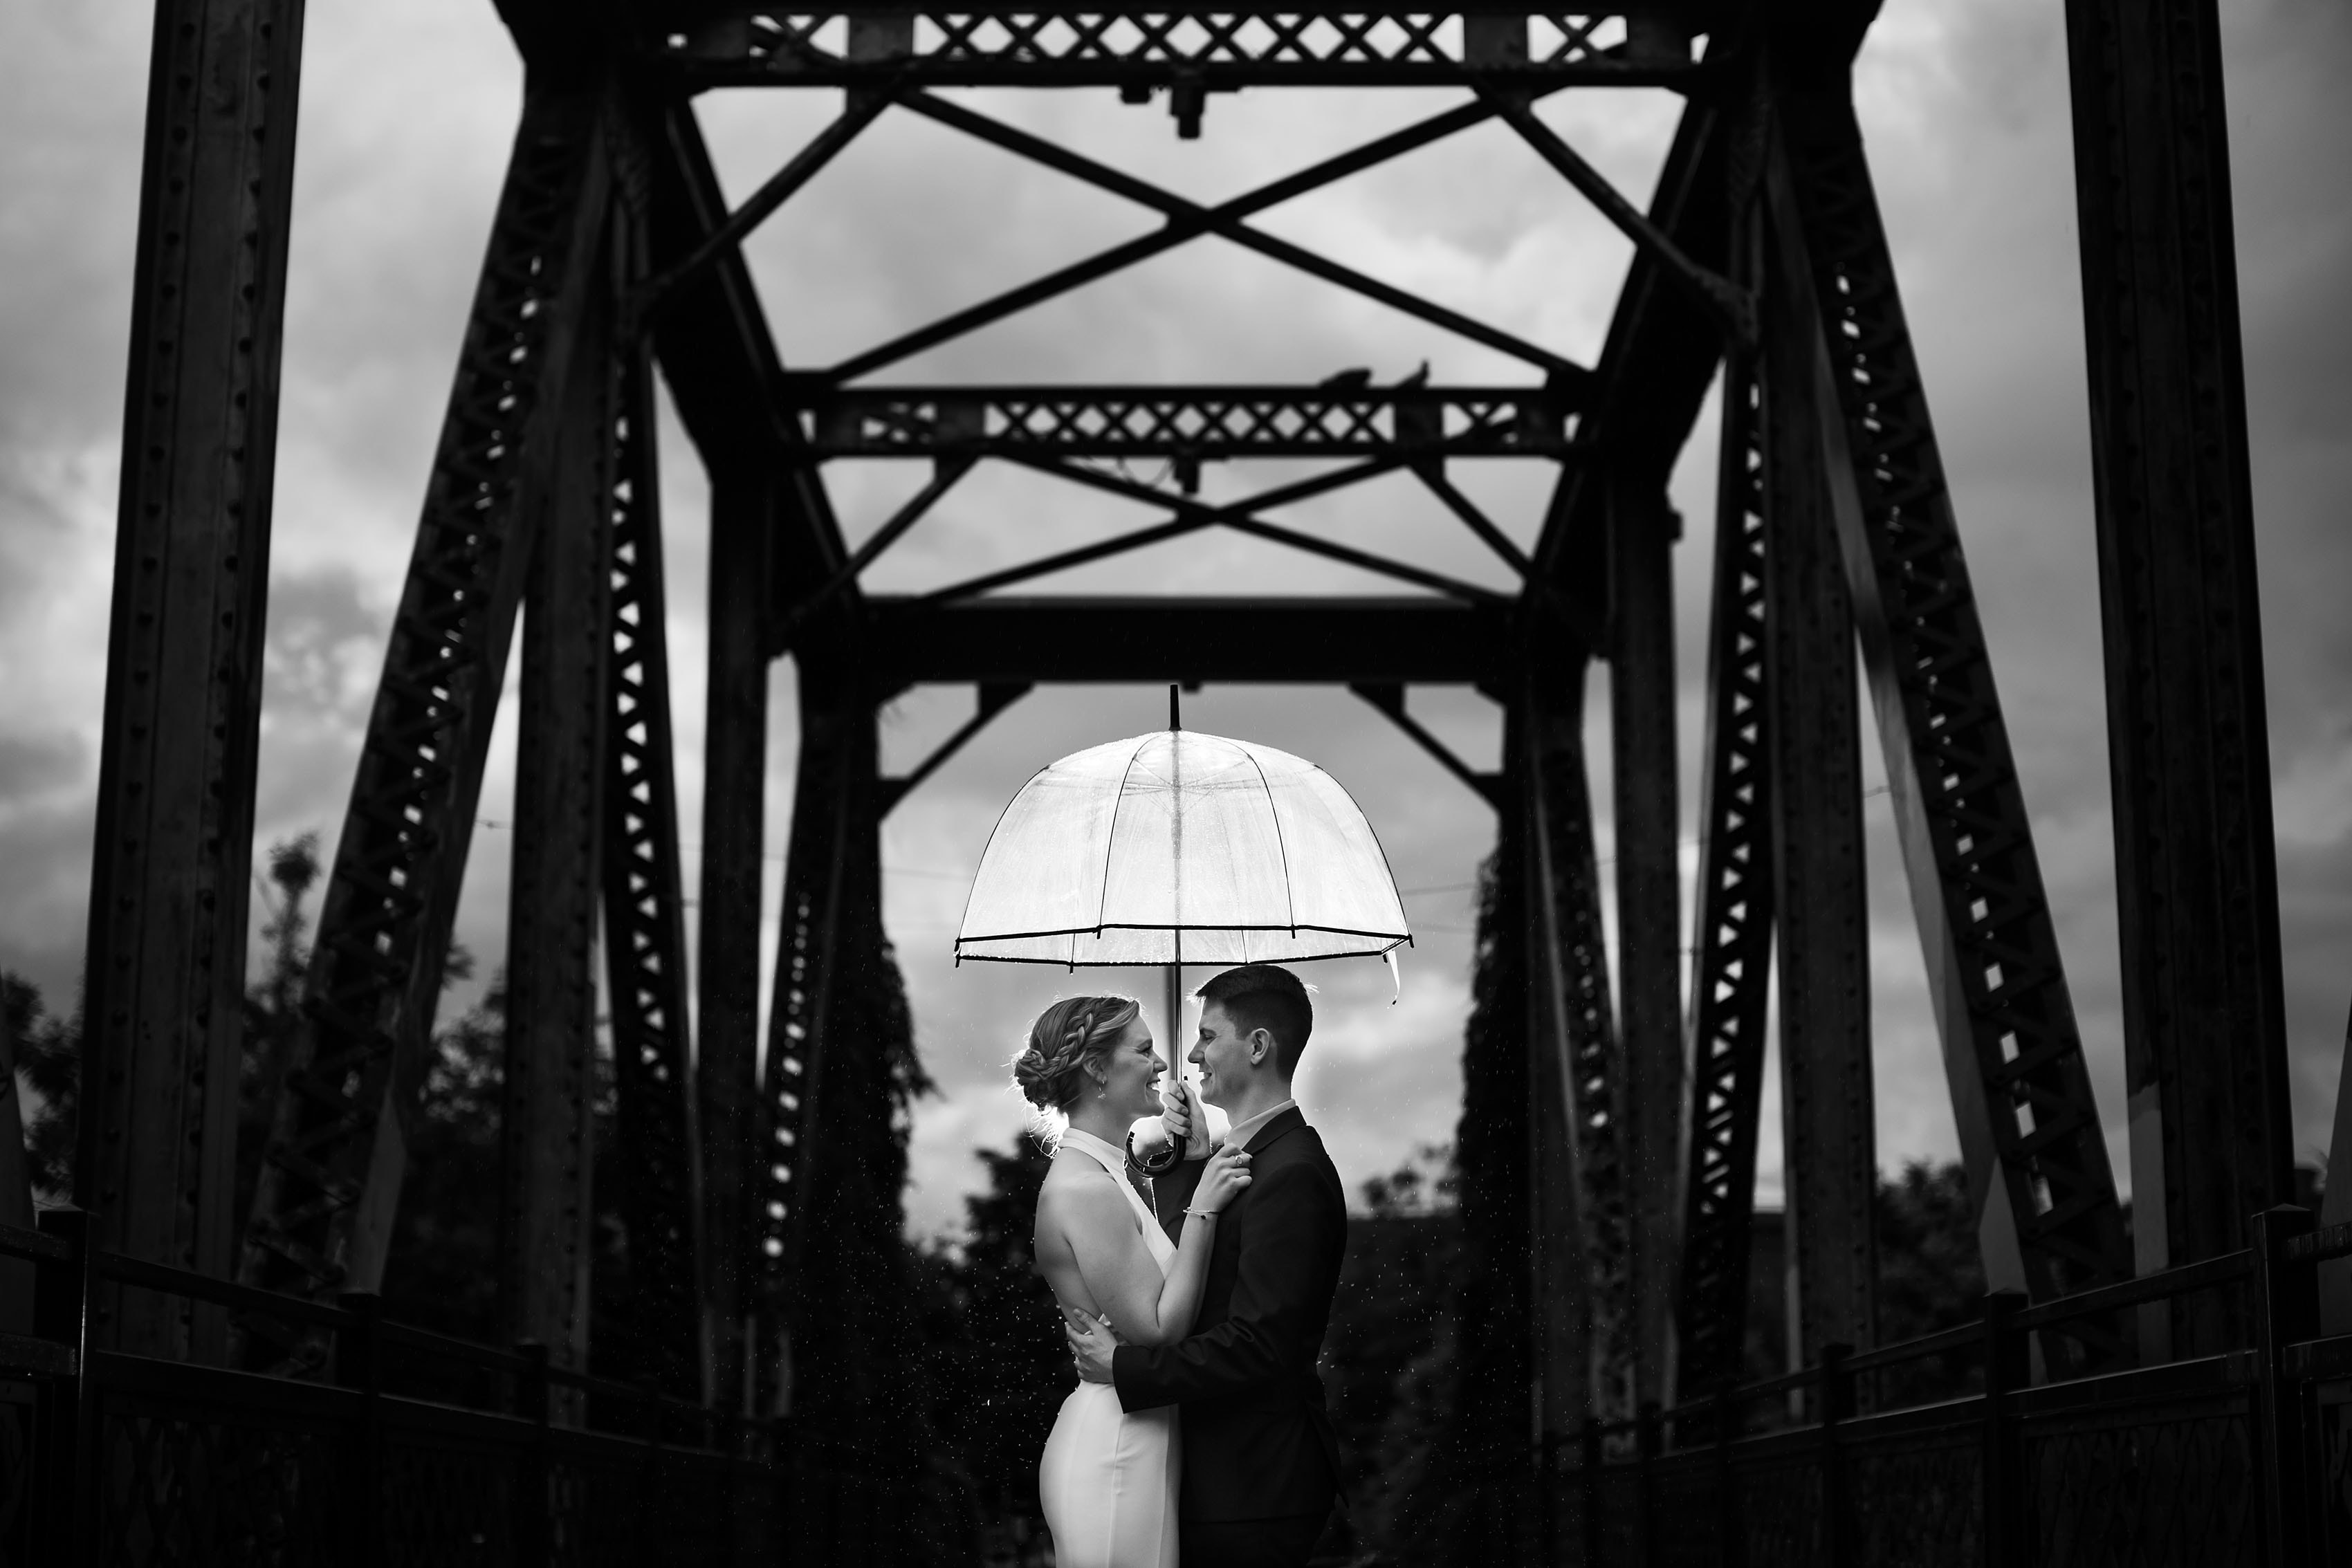 Wynkoop Street Bridge wedding portrait in the rain with an umbrella